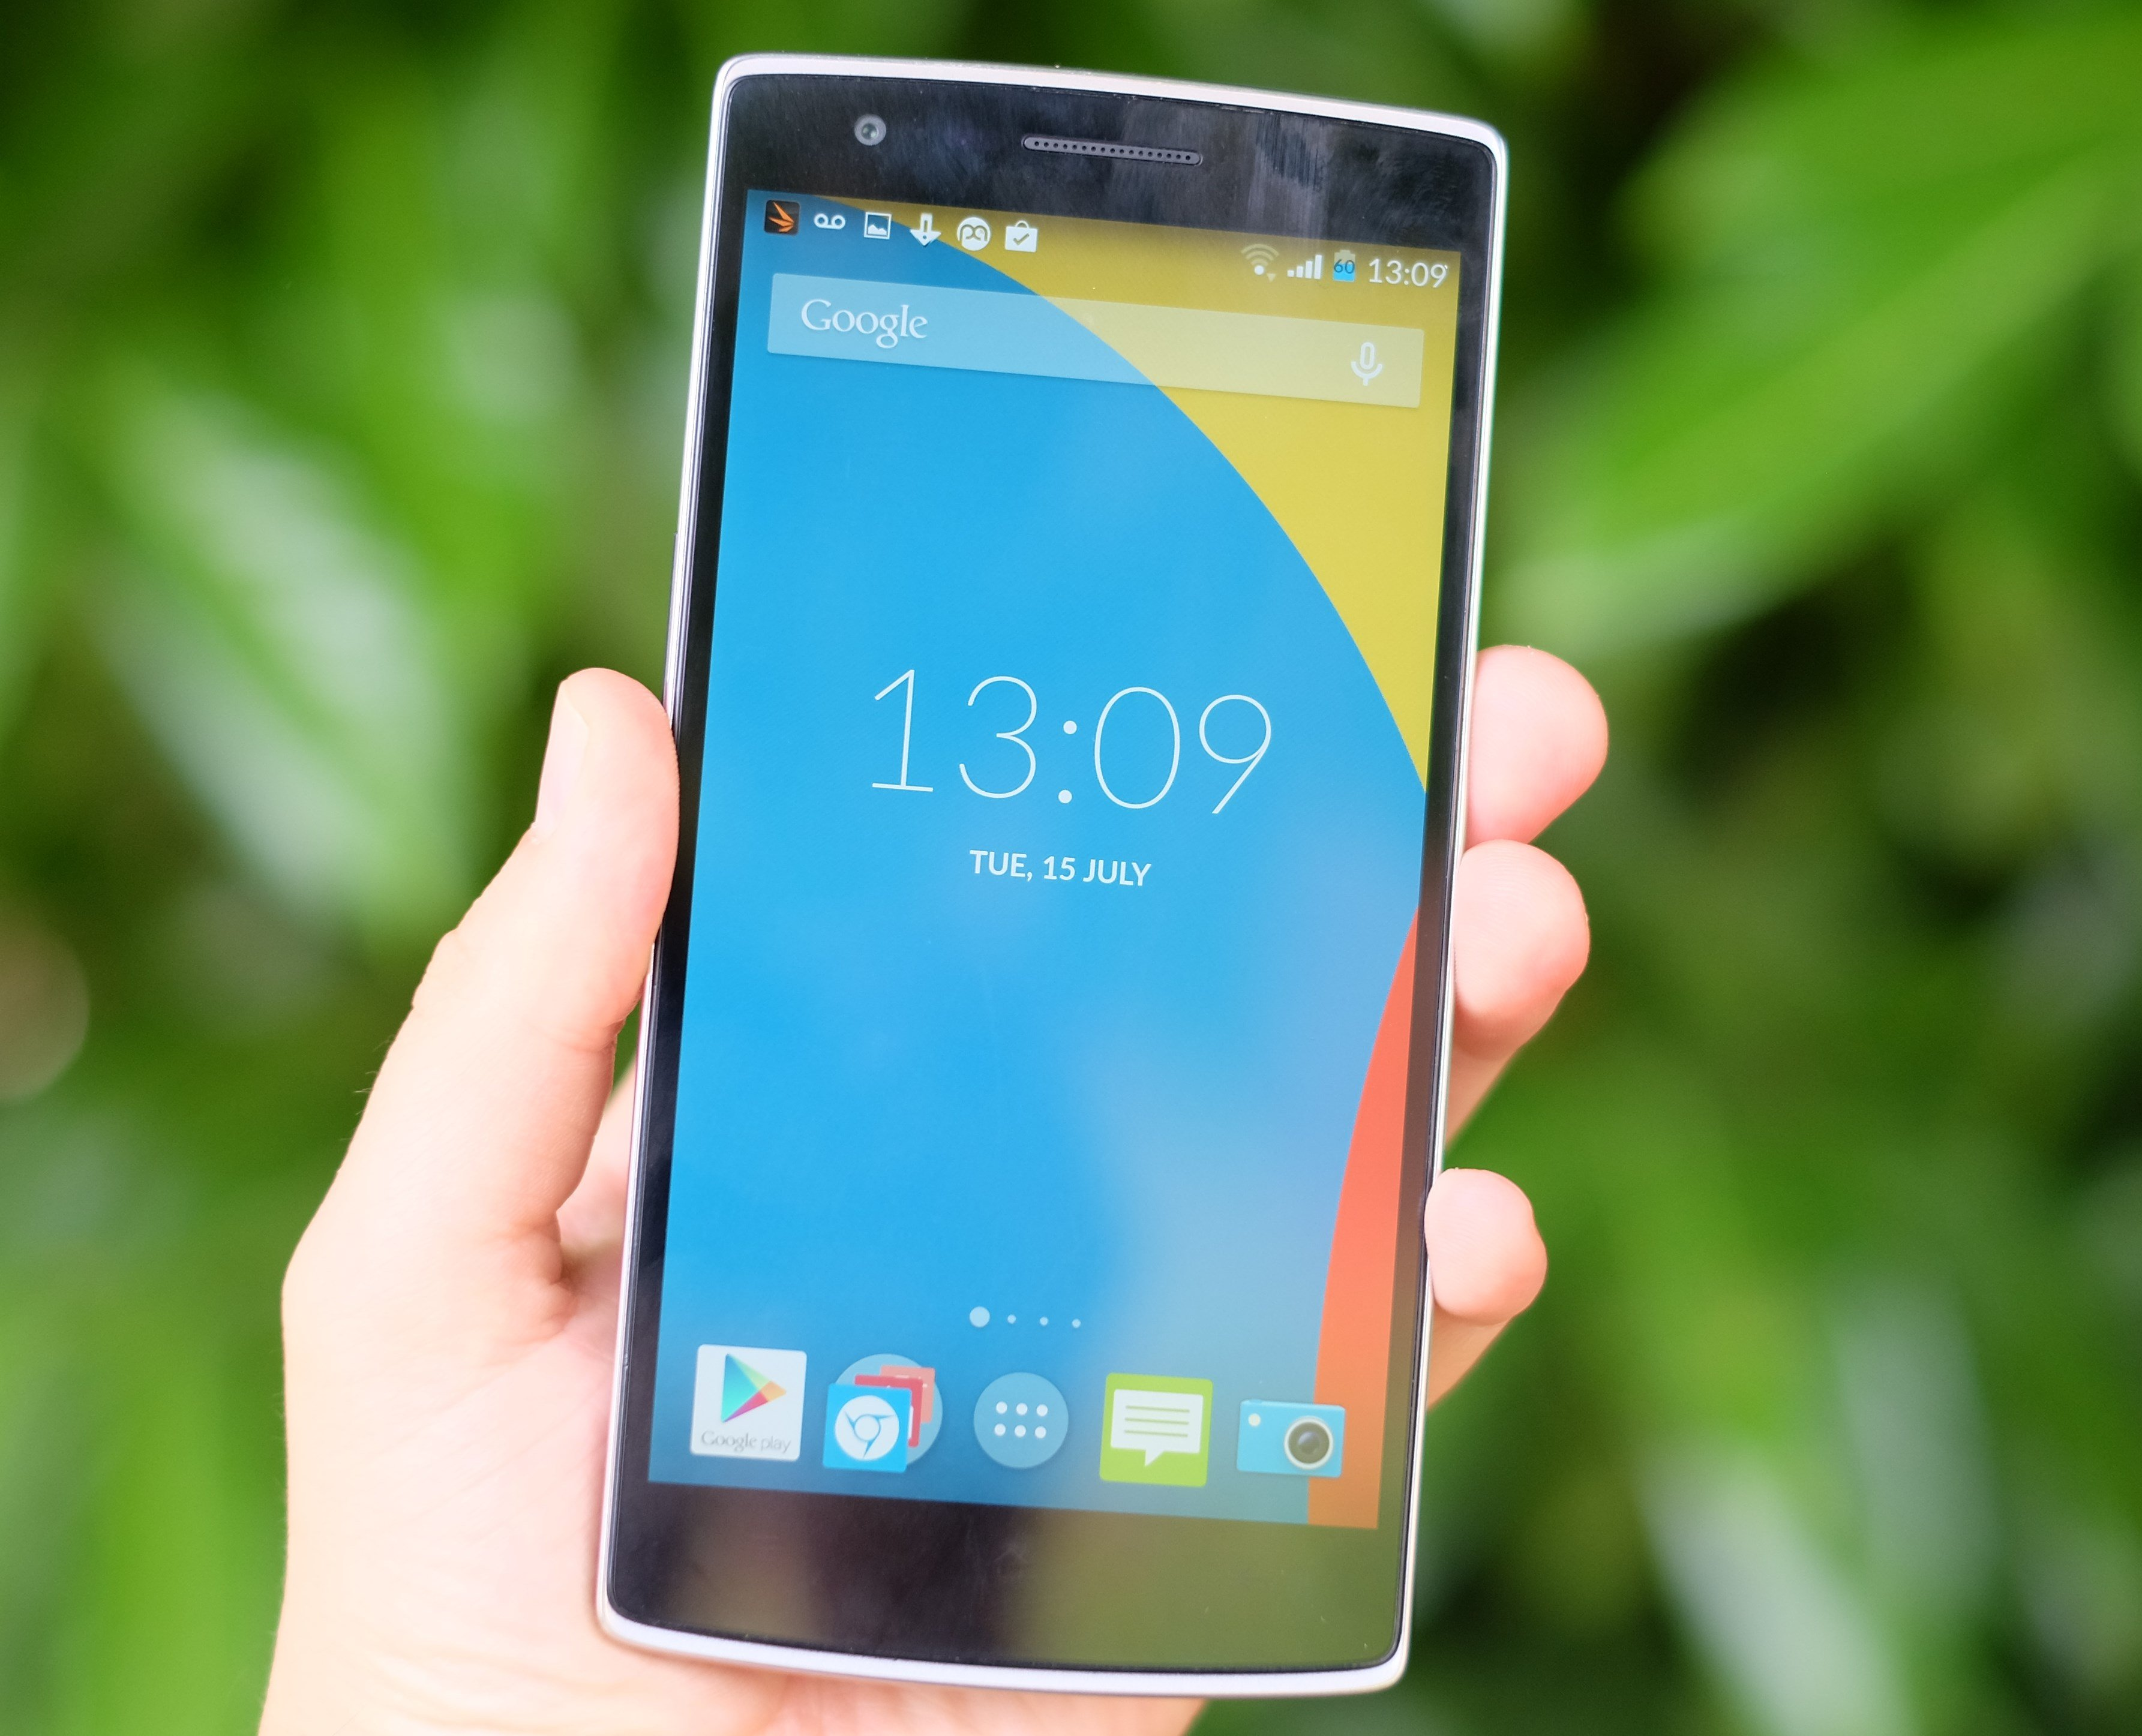 OnePlus One review - The flagship smartphone killer | Expert Reviews